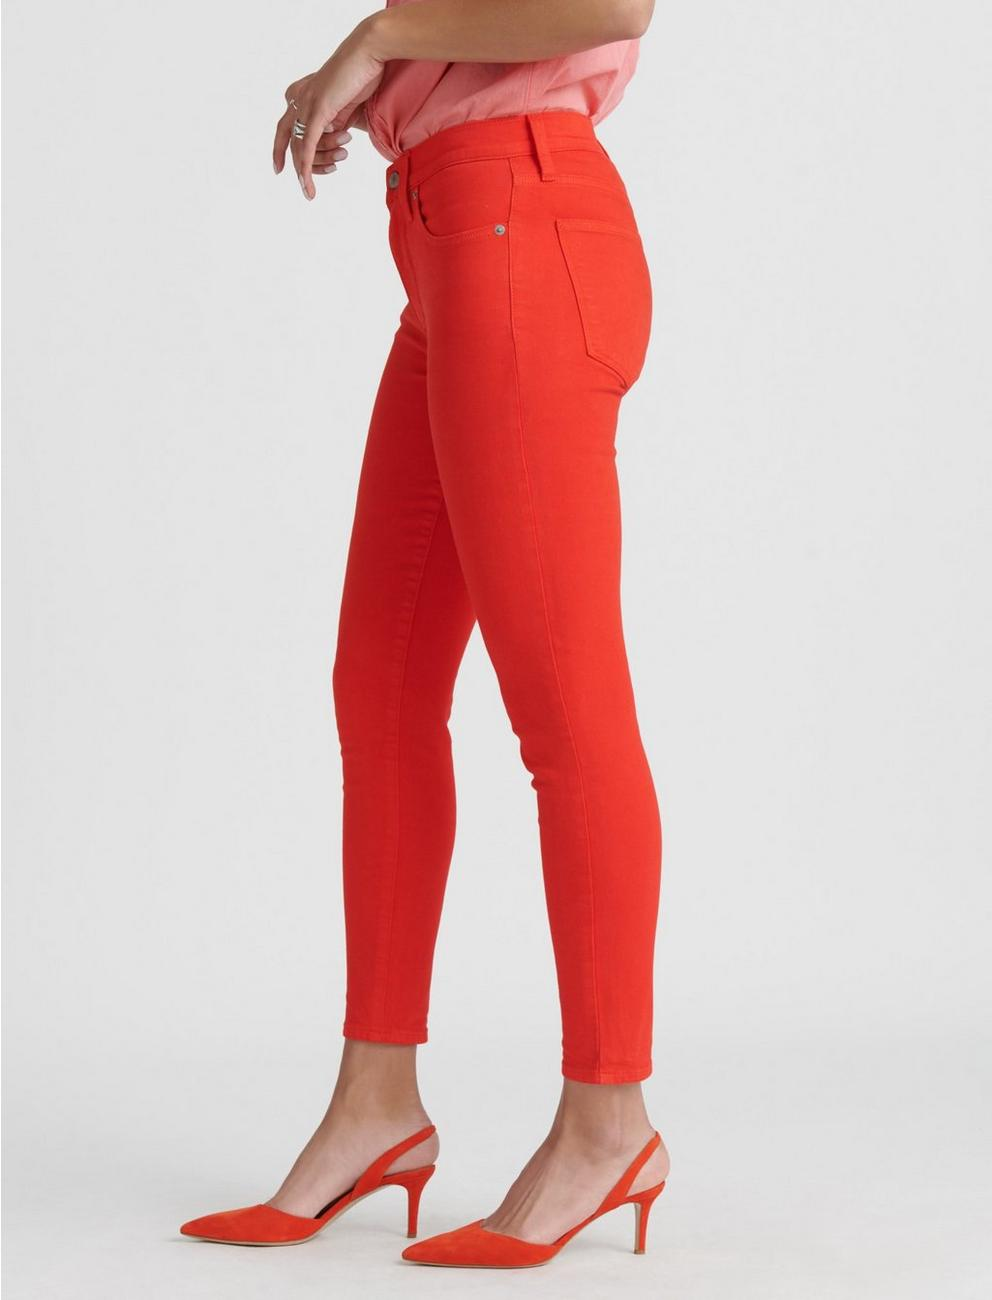 HIGH RISE BRIDGETTE SKINNY JEAN, FIERY RED